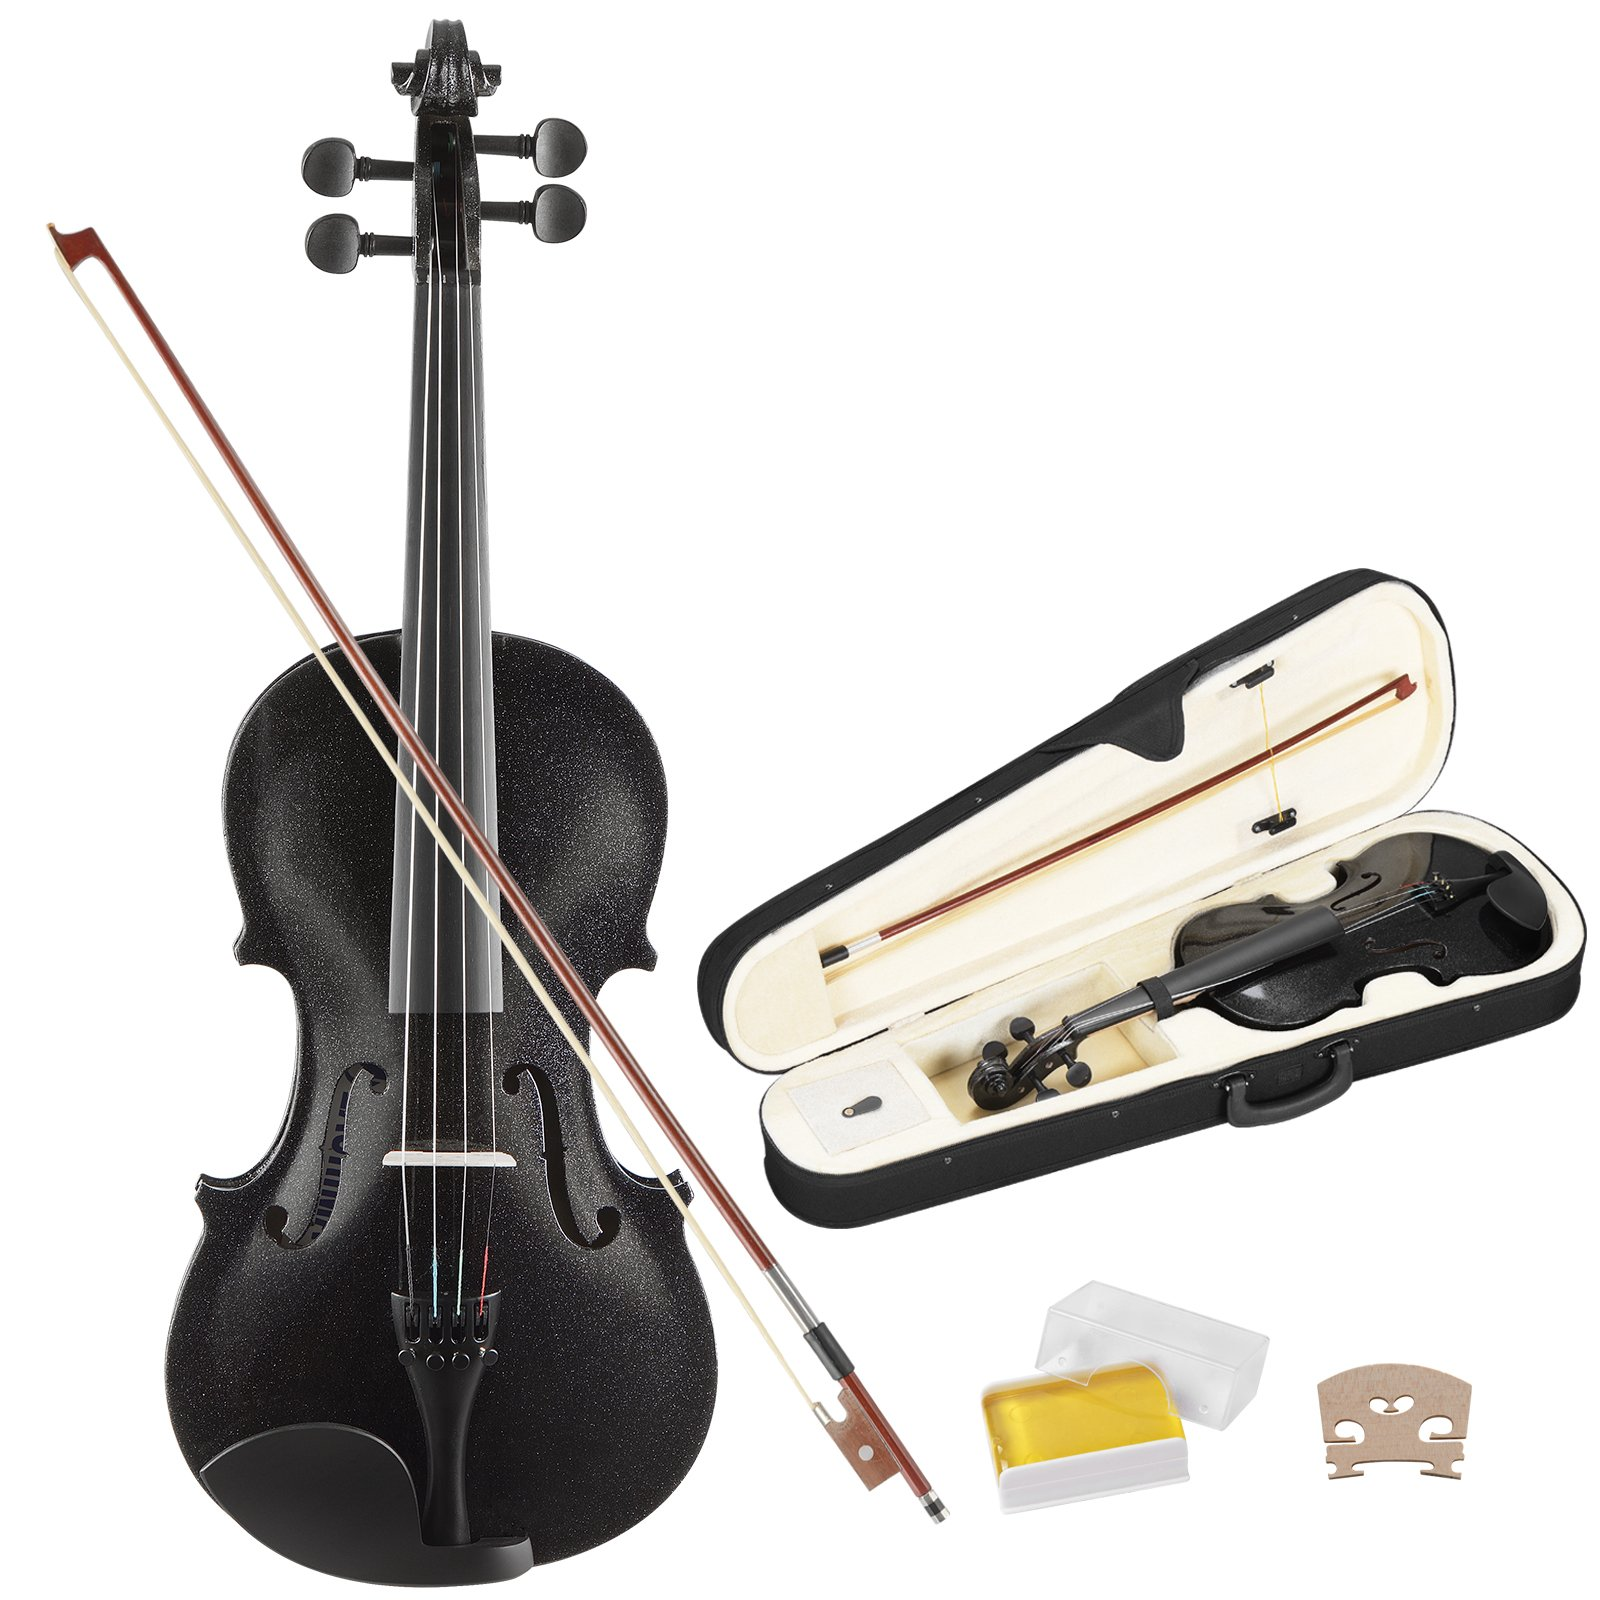 LAGRIMA 4/4 Acoustic Violin, Solid Wood Handcrafted Violin with Hard Case, Bow, Rosin for Beginner Full Size(Black-Plywood)